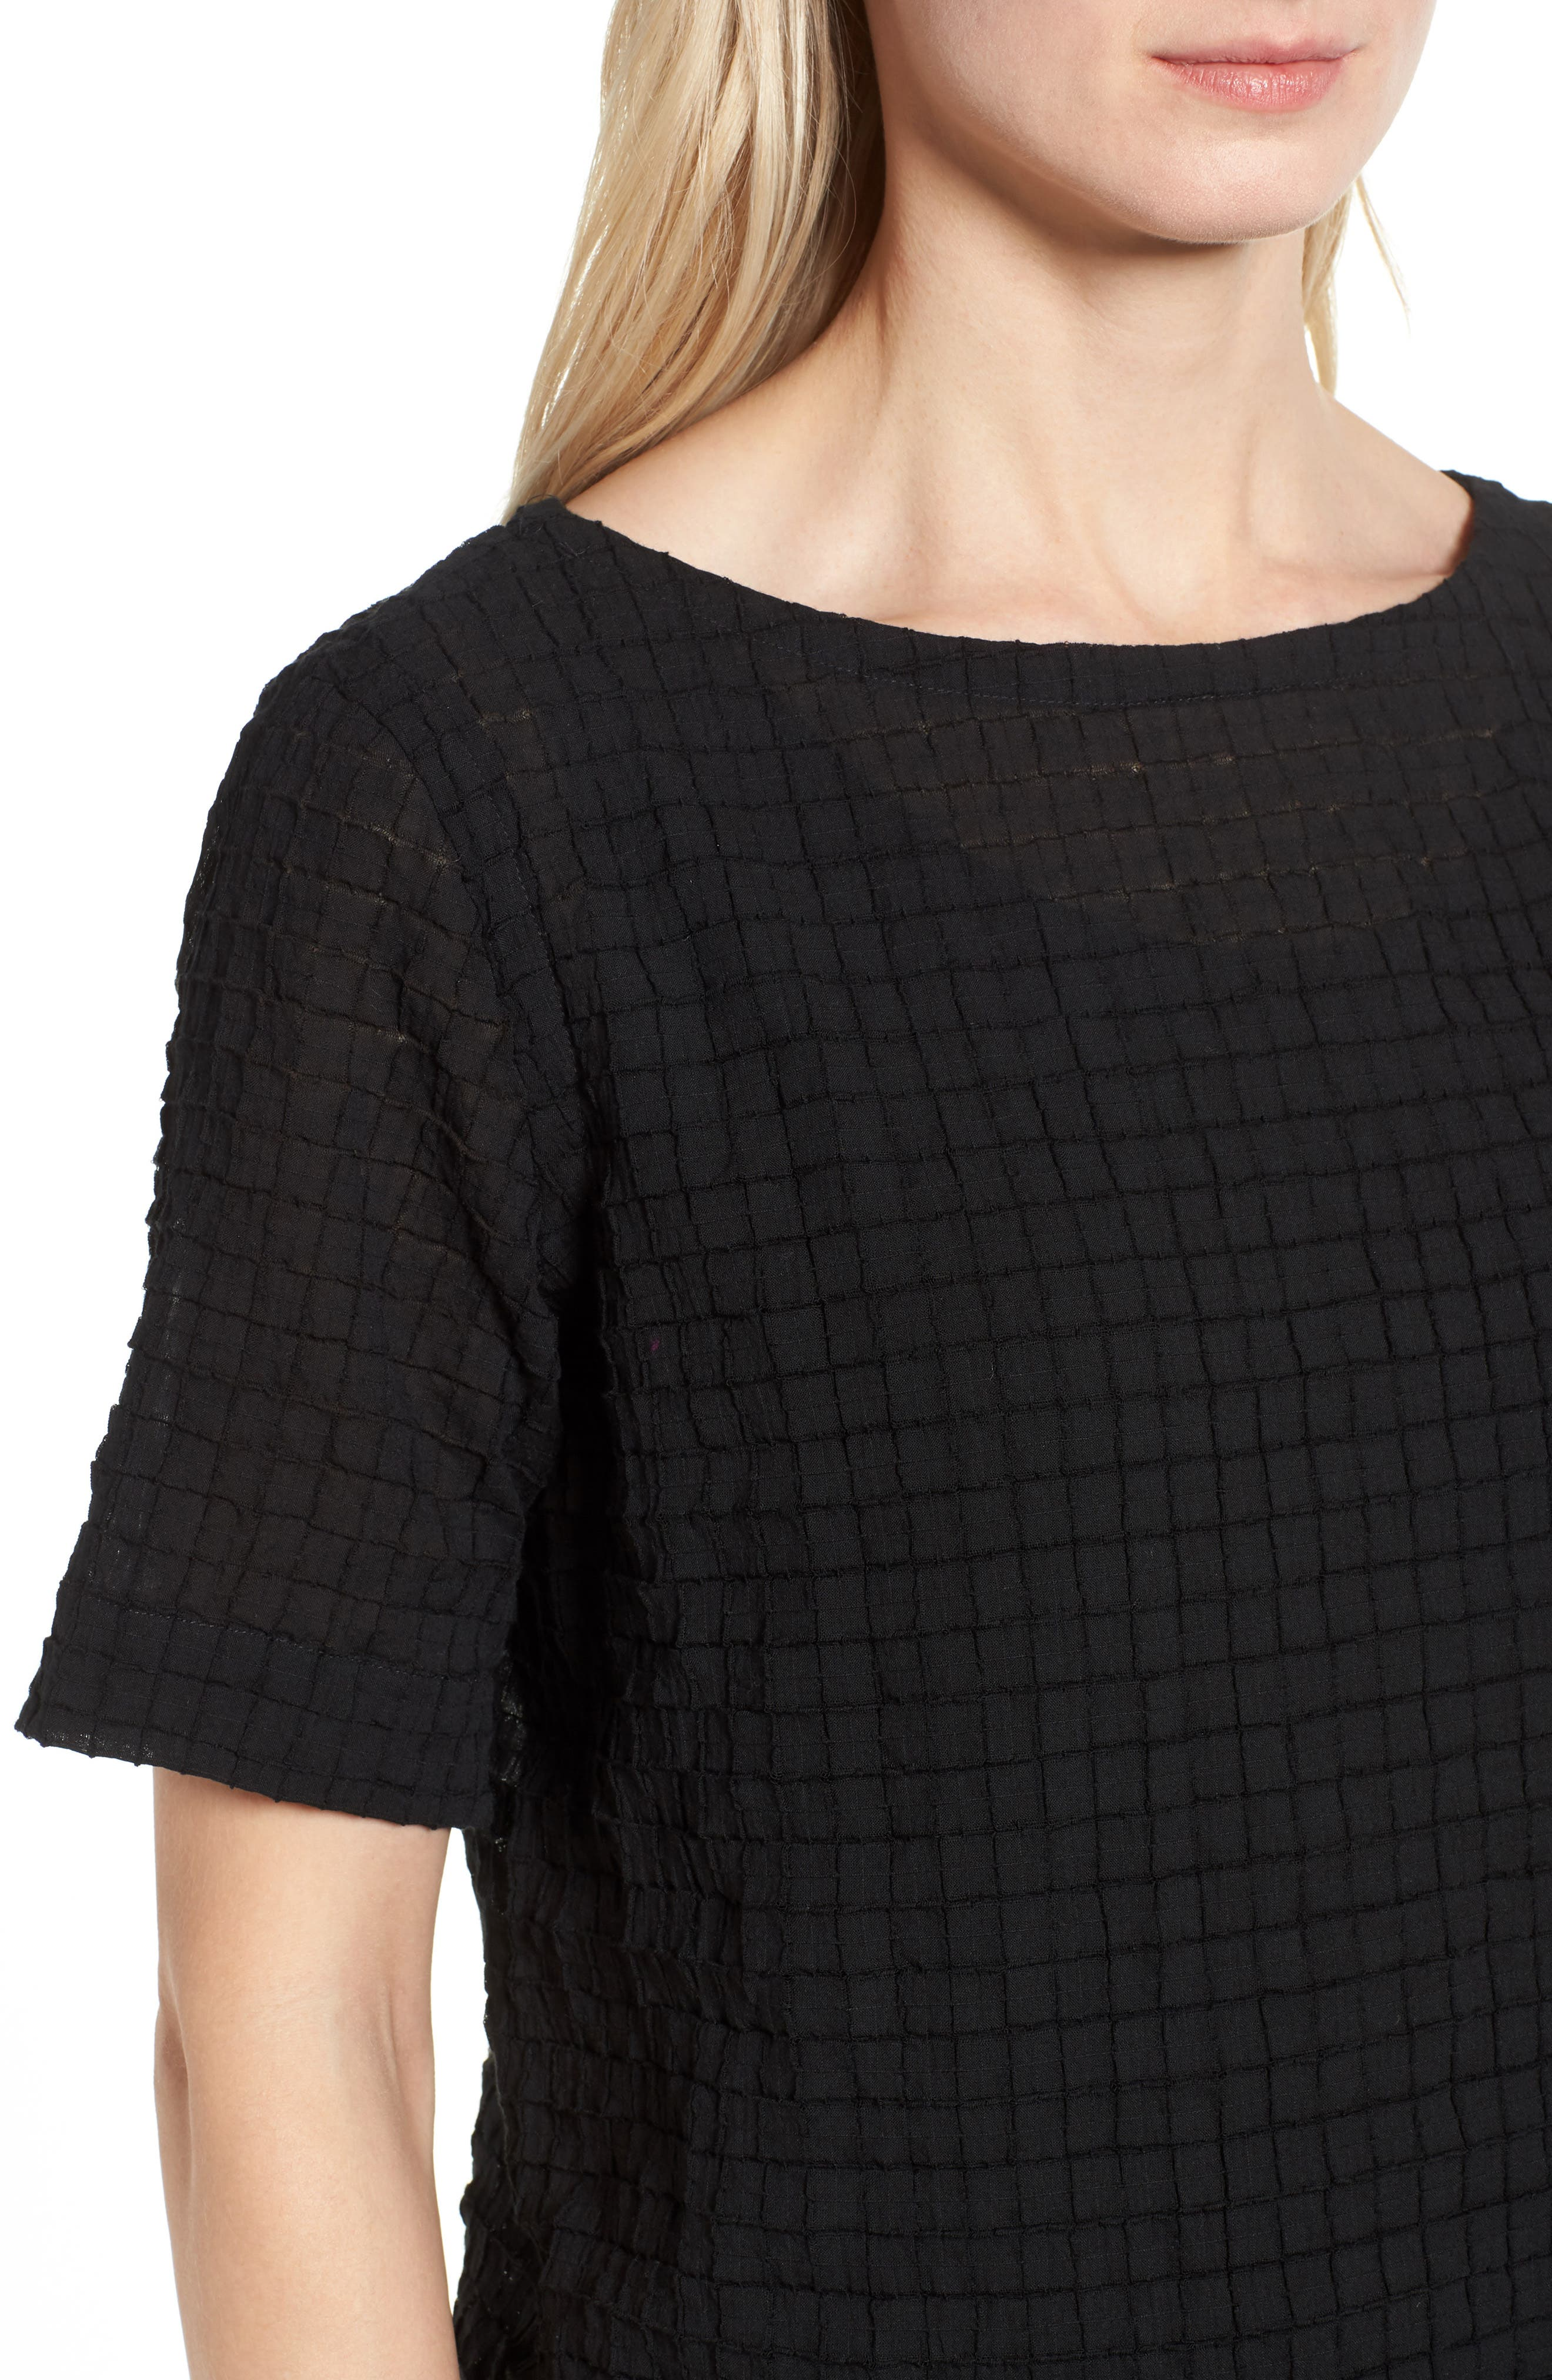 Stretch Organic Cotton Top,                             Alternate thumbnail 4, color,                             Black